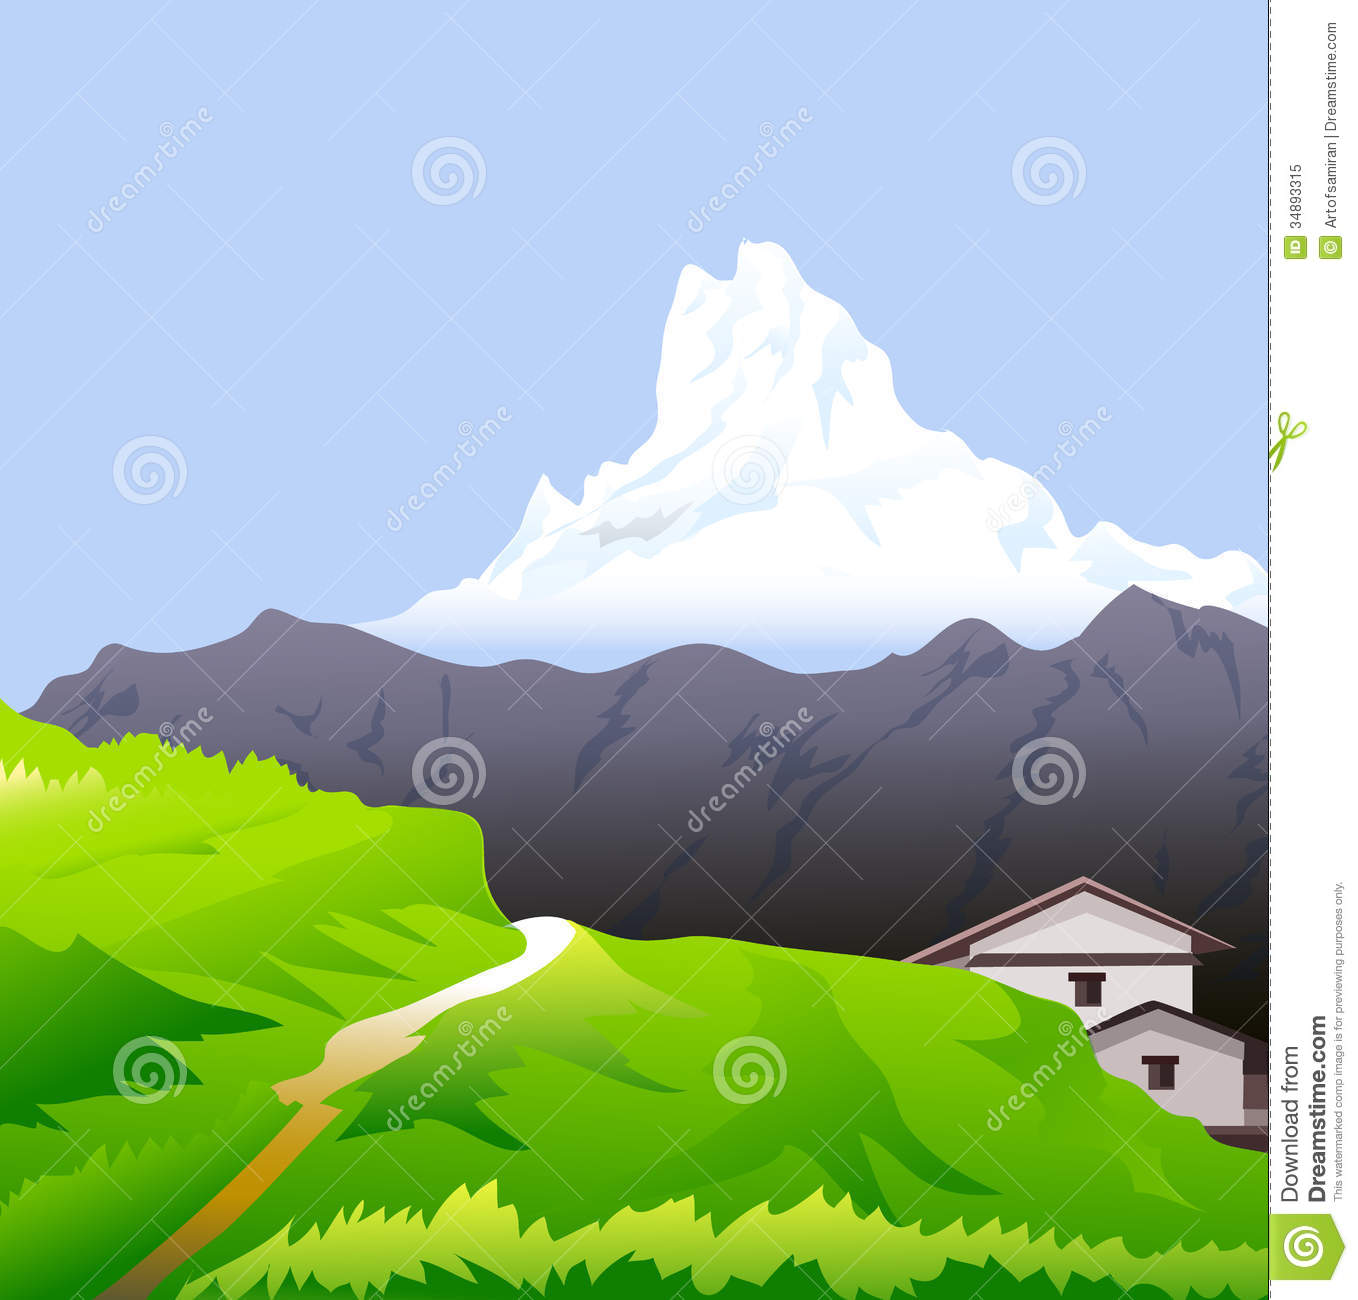 Himalayas clipart #9, Download drawings